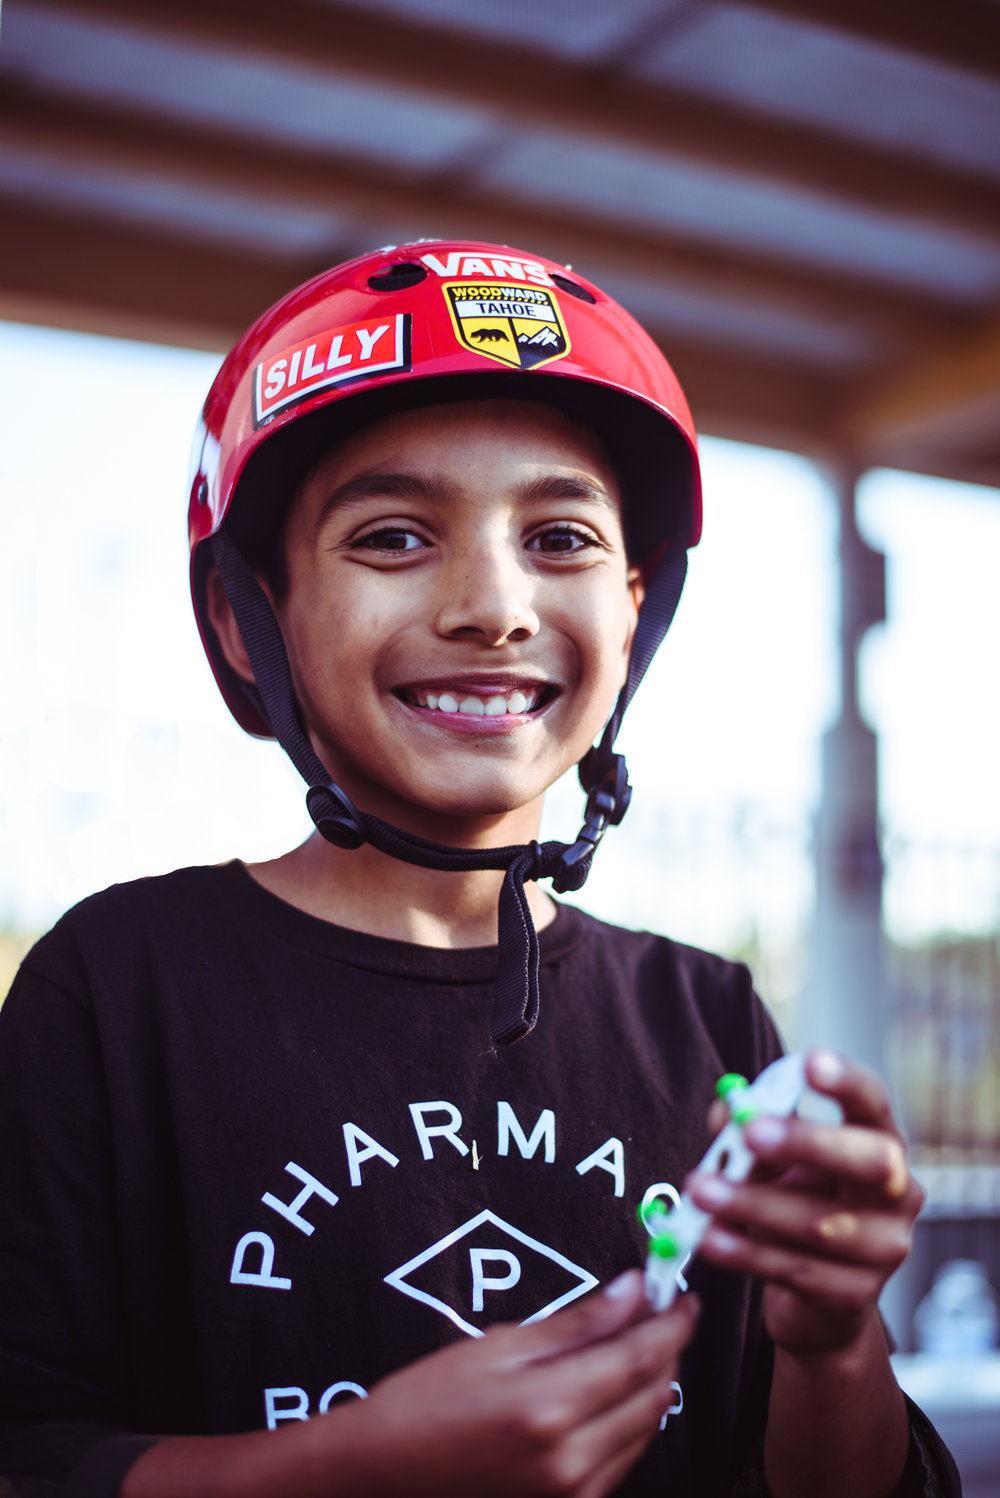 Skateboard Birthday Party-44.jpg